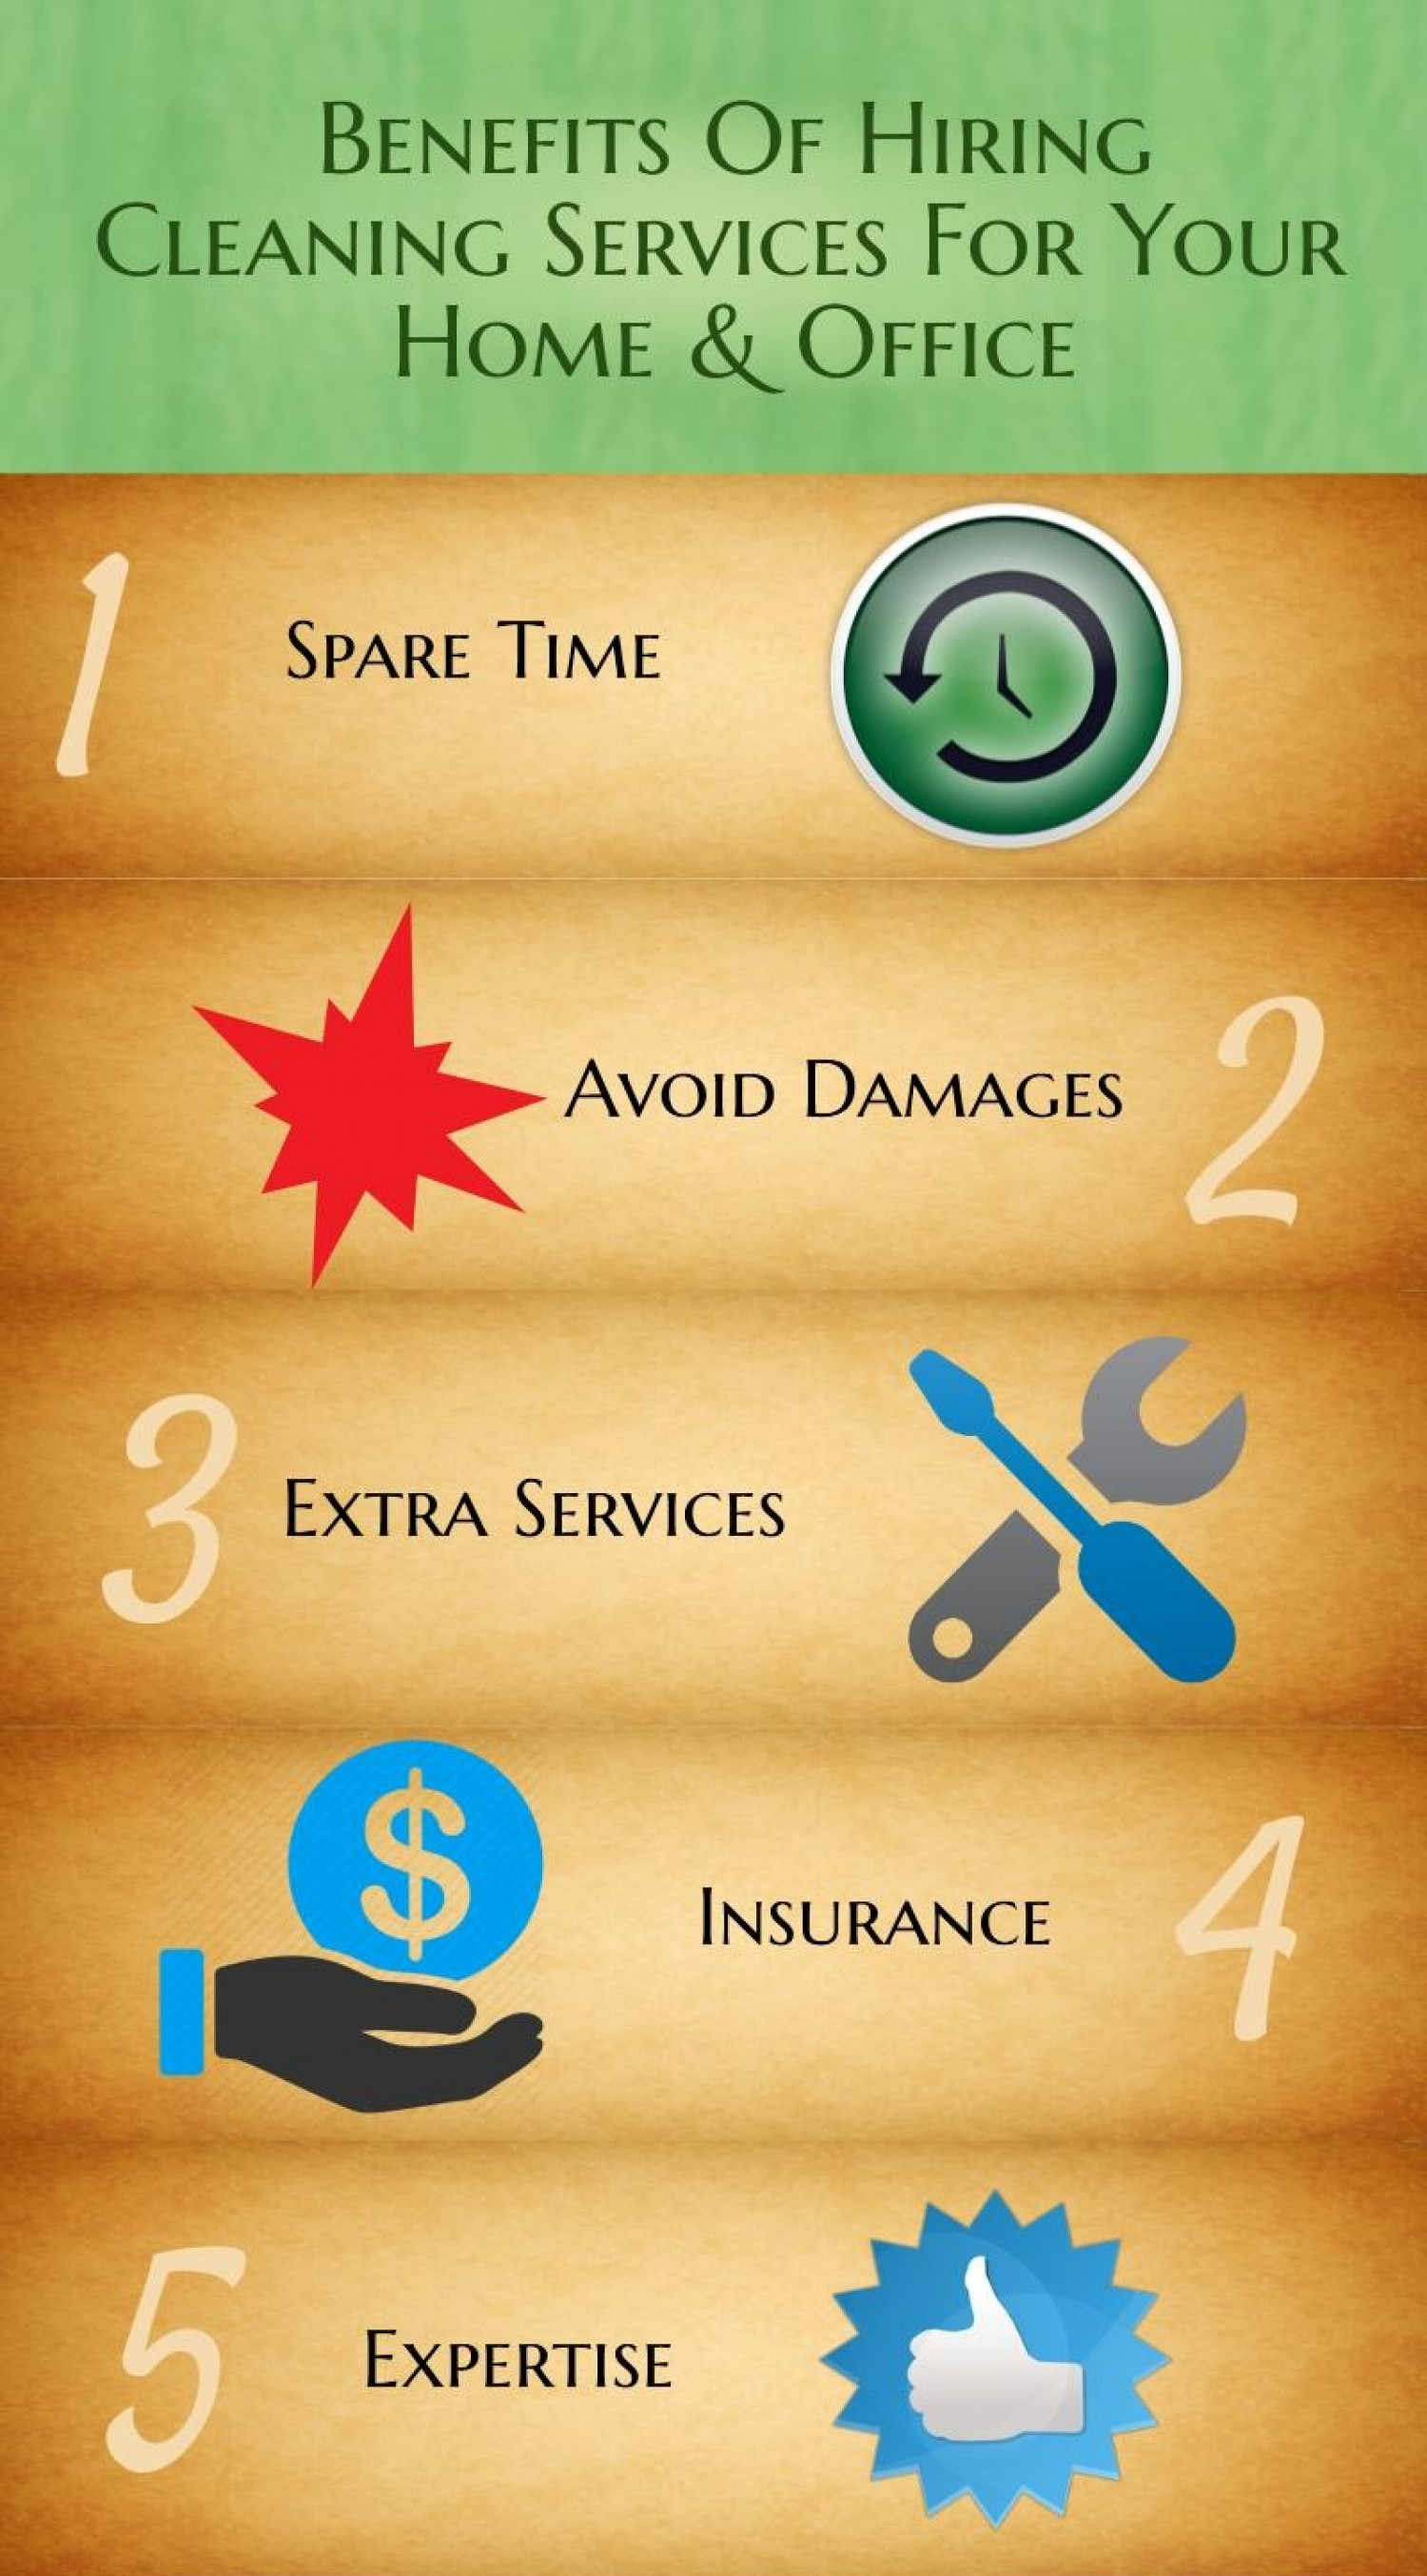 Reasons to Hire a Cleaning Service for your Office Infographic